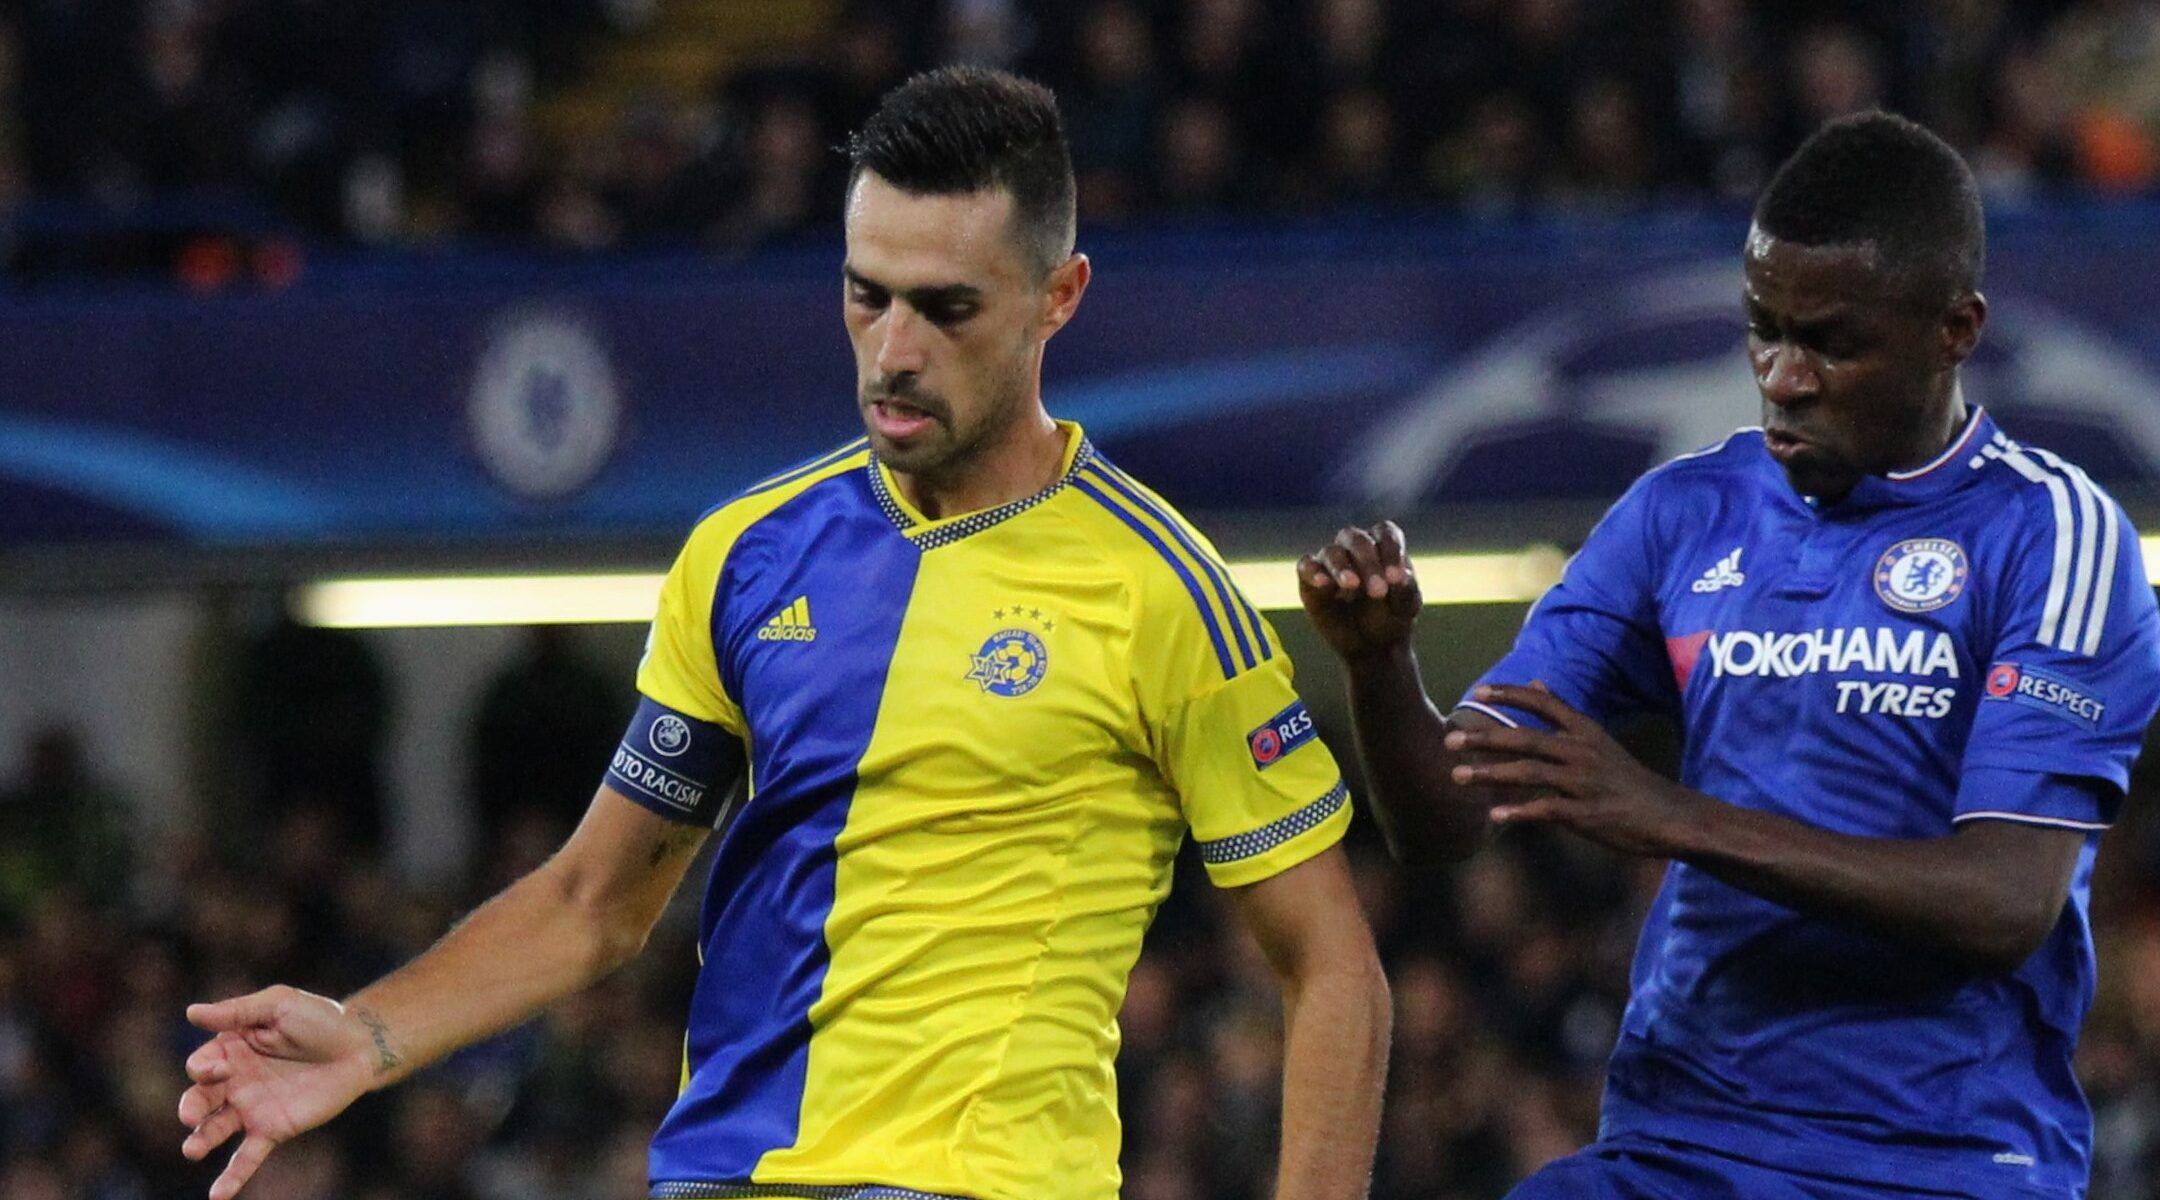 Eran Zahavi, left, plays for Israel at a Champions League game against Chelsea FC in London, UK on Sept. 16, 2016. (Wikimedia Commons)